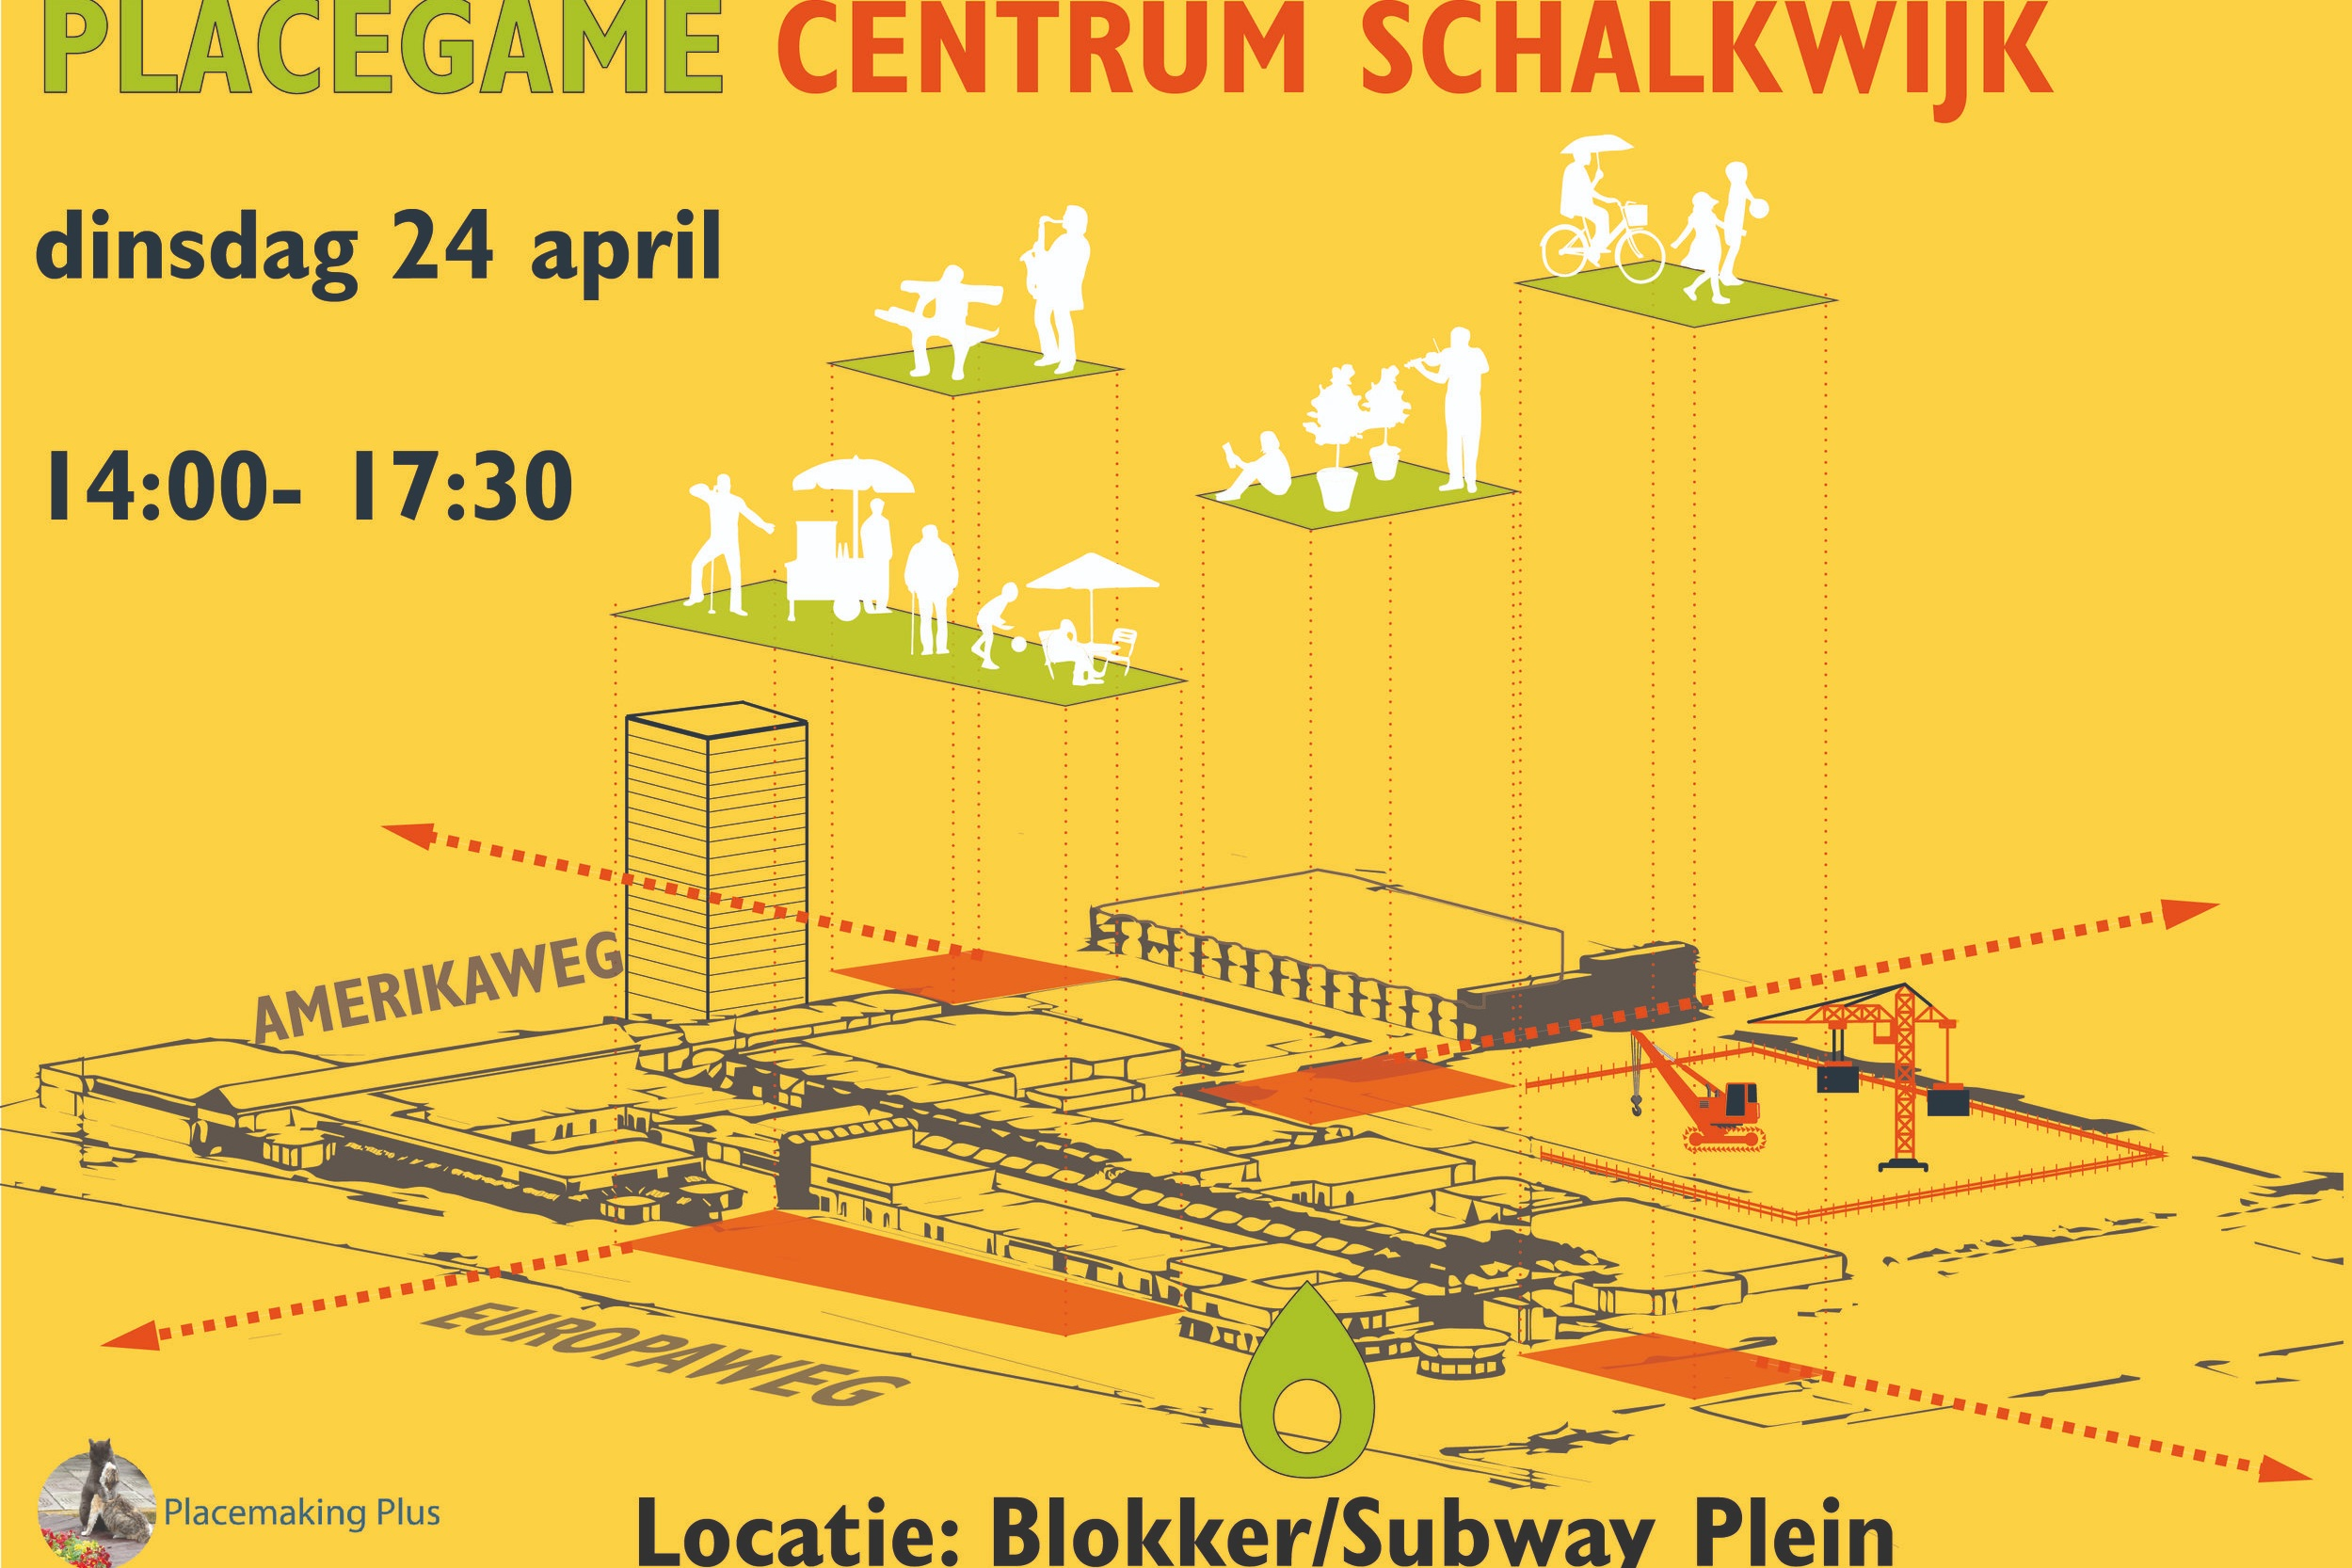 Placegame_Centrum_Schalkwijk_placemakingplus_publicspace_citygame_local_neighbourhood_stakeholders_invitation.jpg